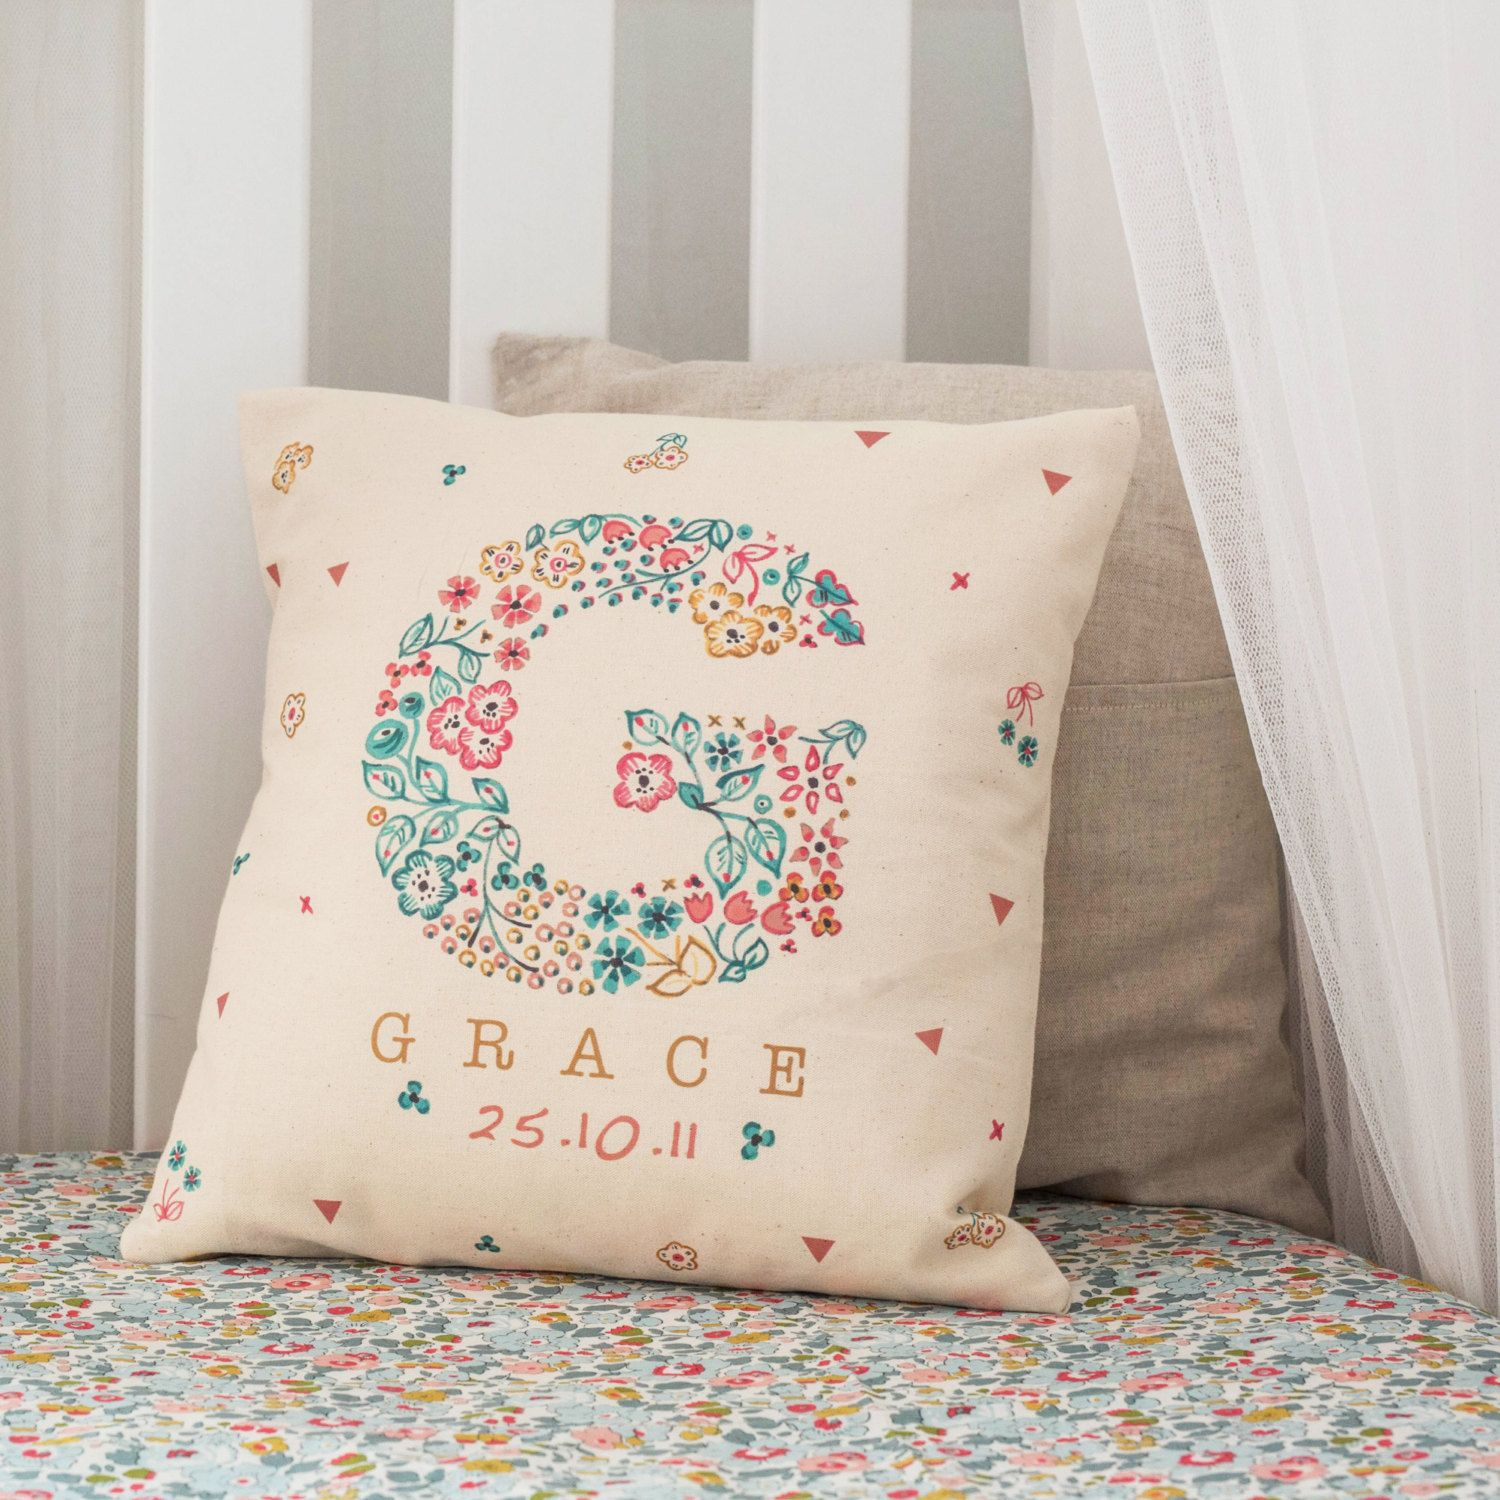 Baby christening girl cushion personalised with name and date